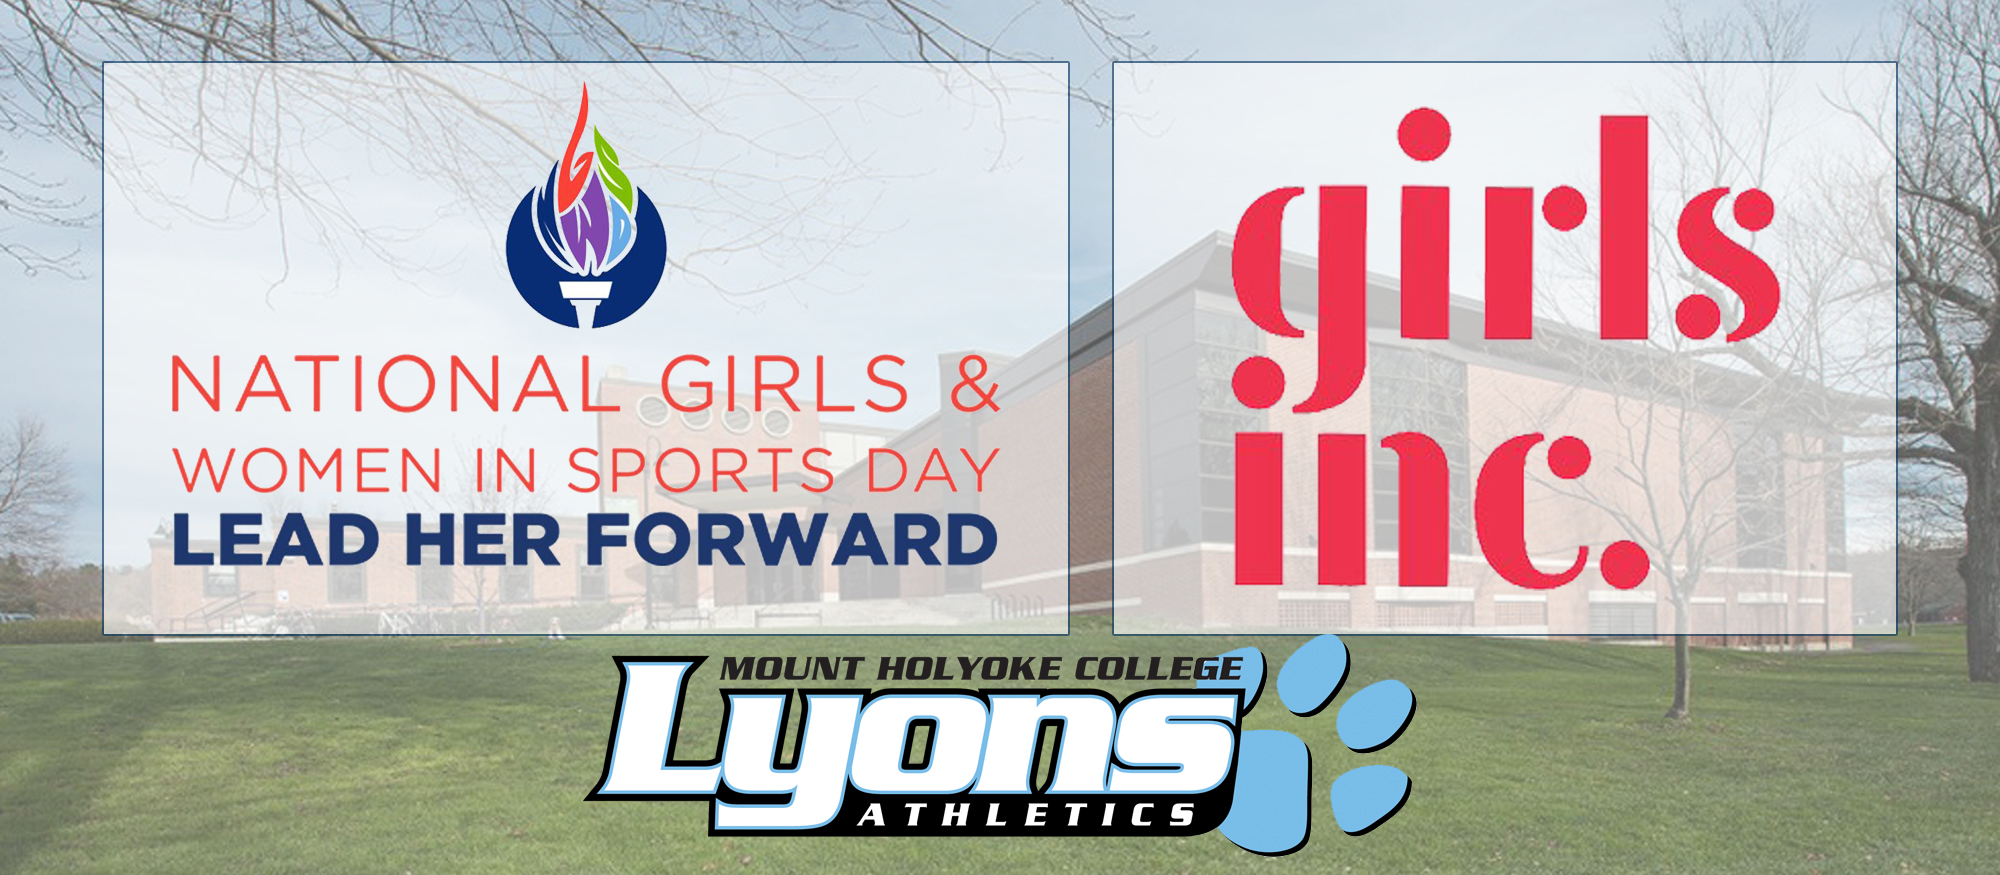 Mount Holyoke College to Celebrate National Girls and Women in Sports Day on February 8